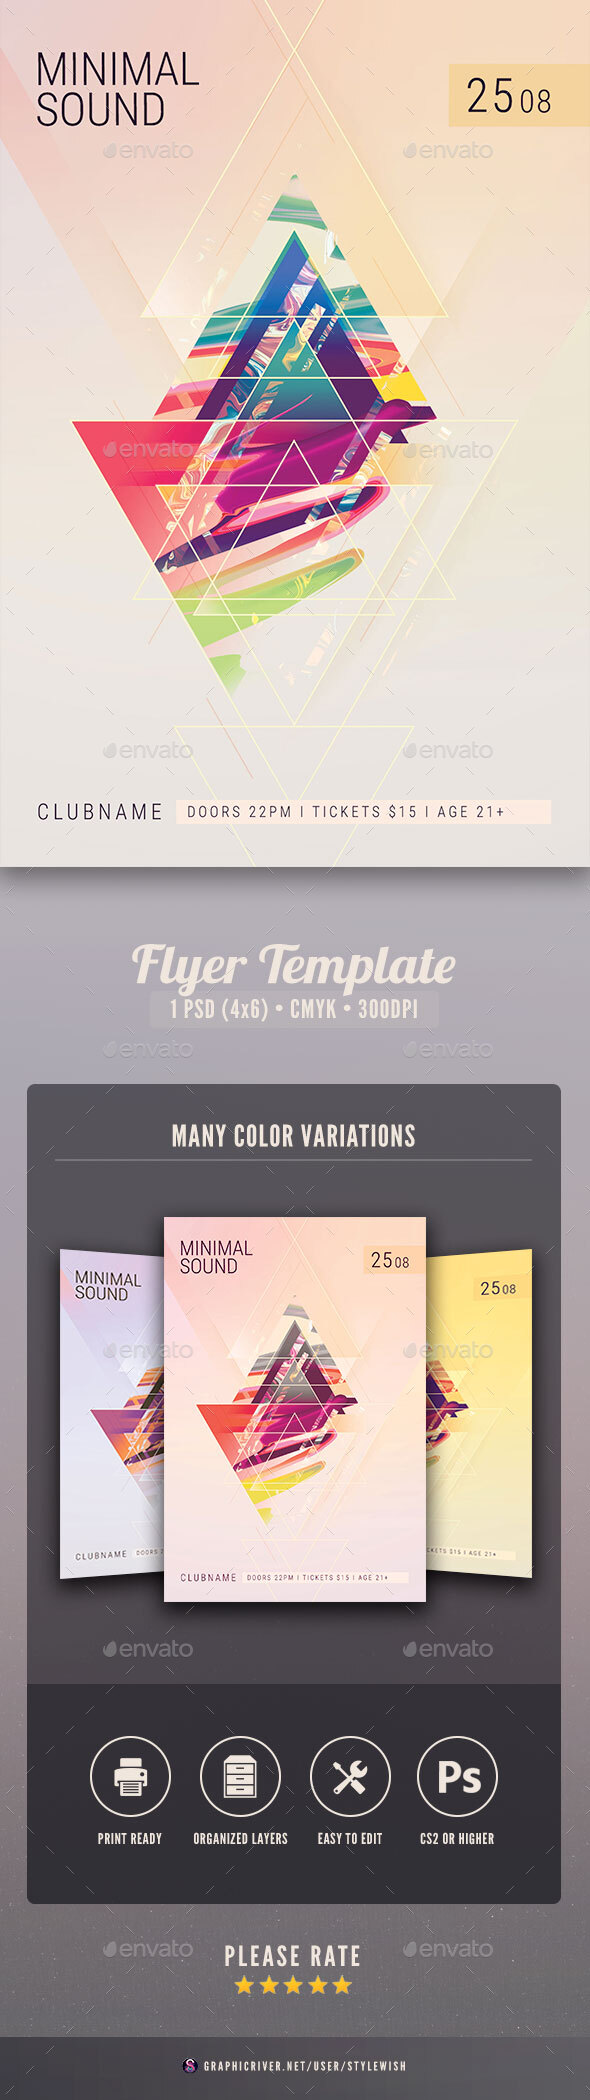 Flyers PSD – Minimal Sound Flyer – Download